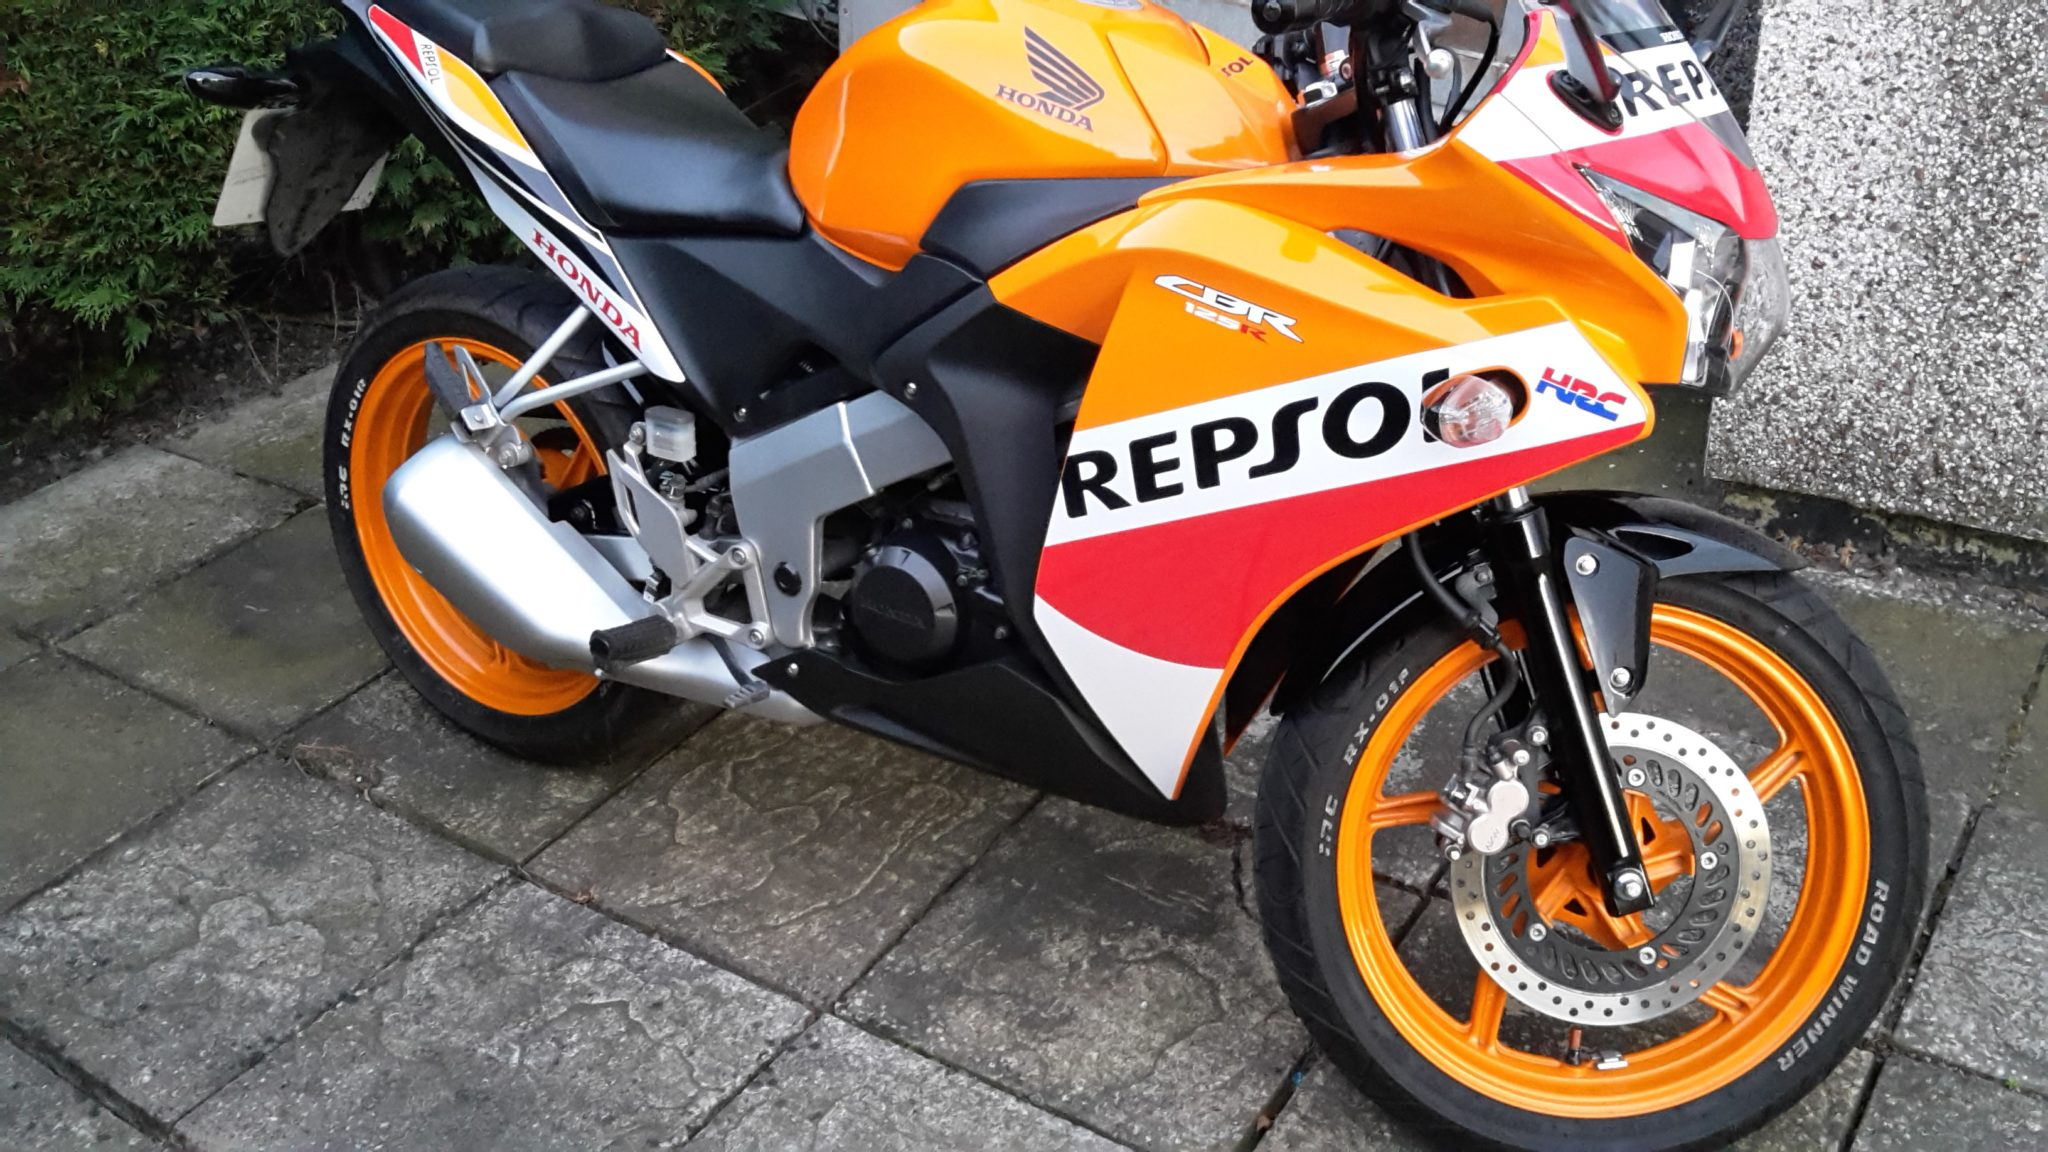 Handy Andy – Honda CBR125R